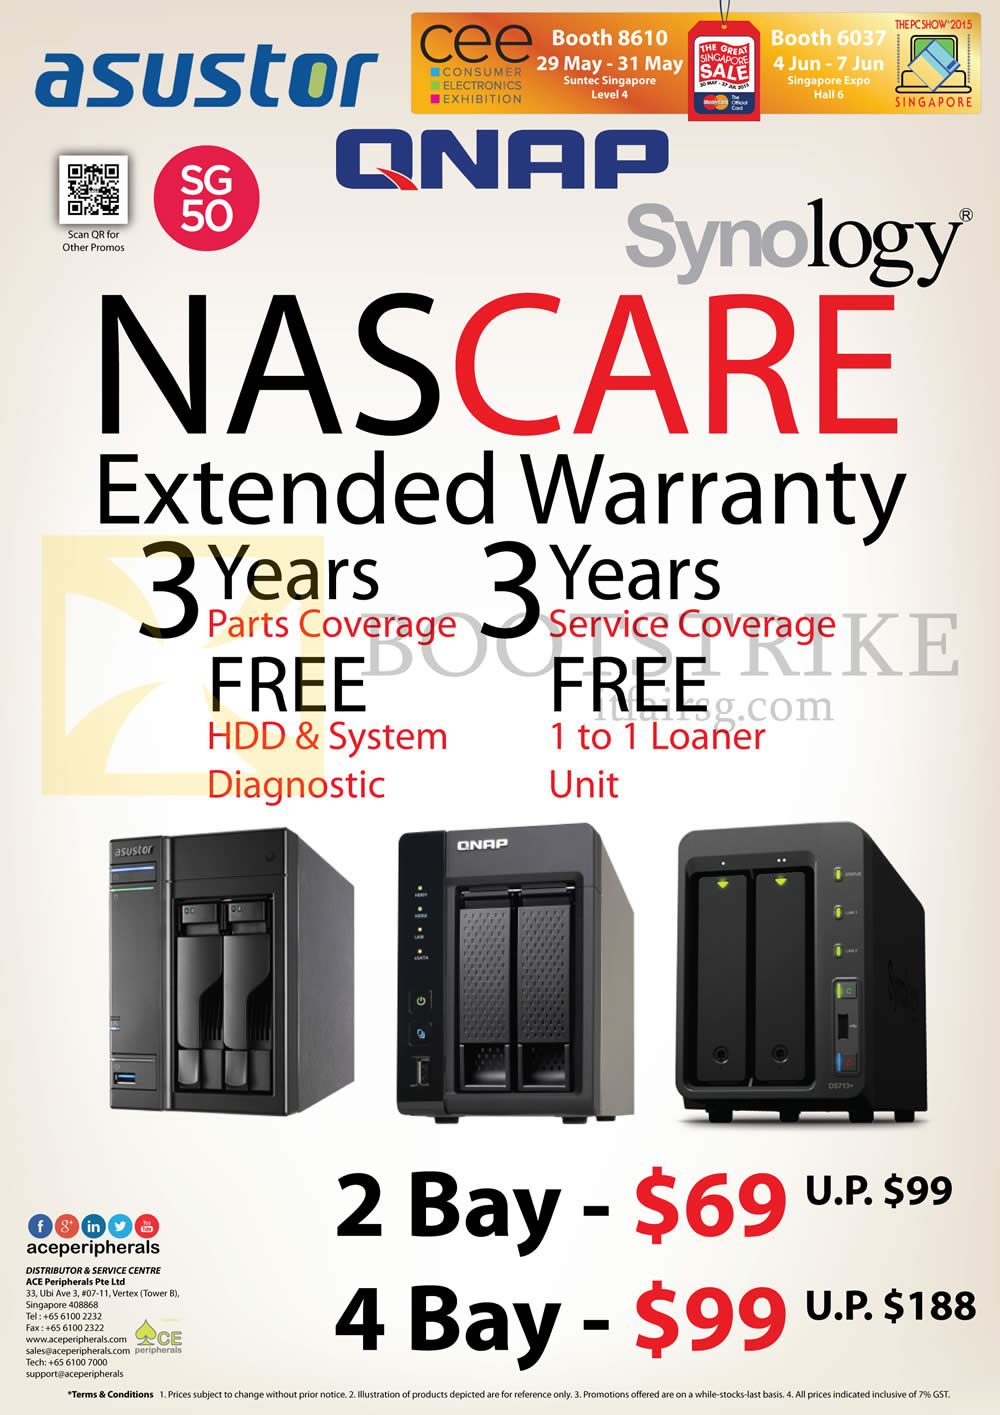 PC SHOW 2015 price list image brochure of Ace Peripherals NASCare